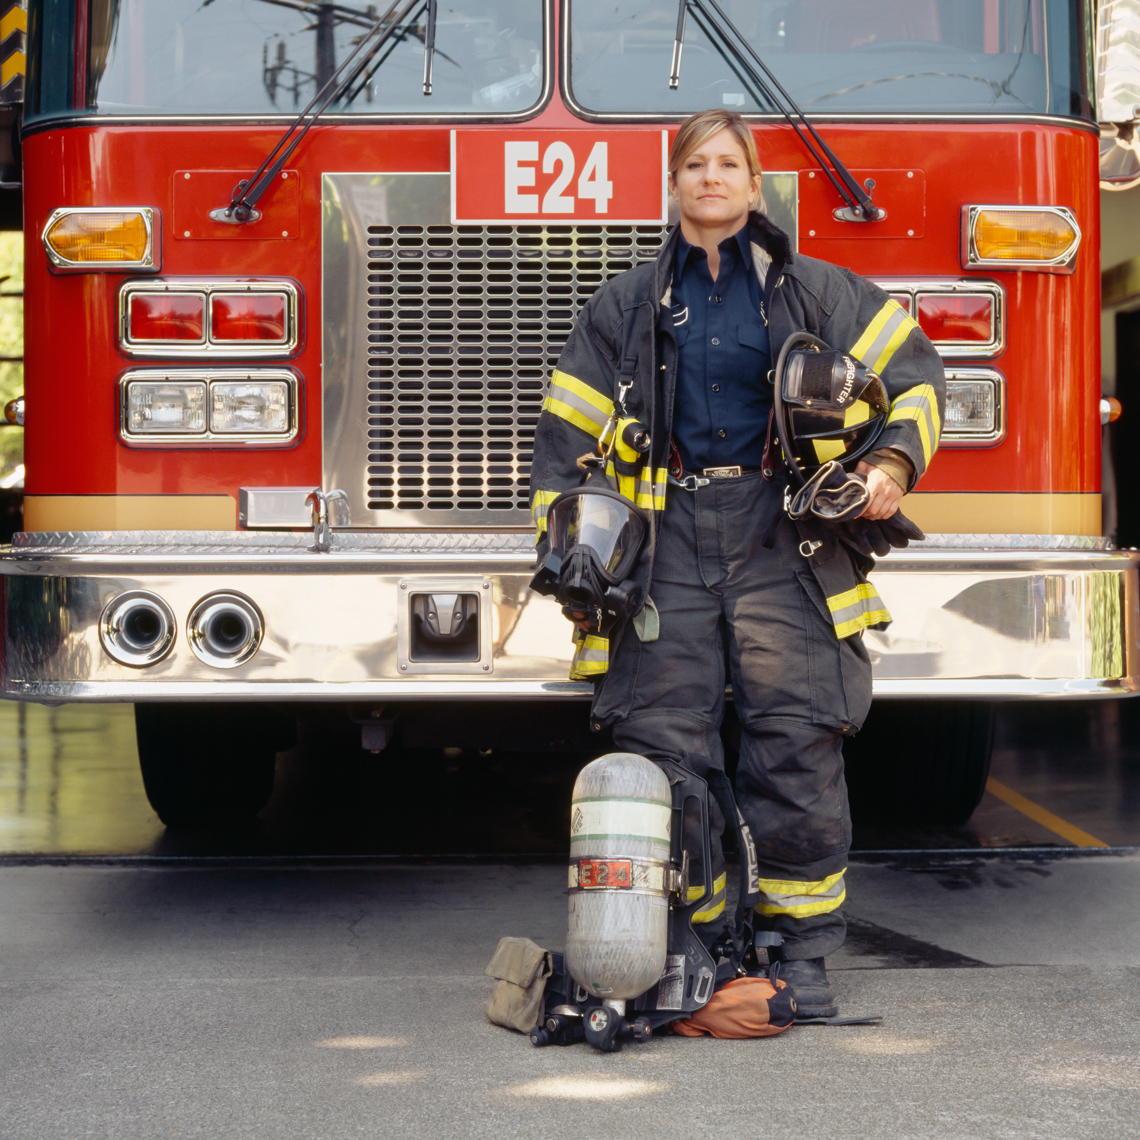 Female woman firefighter with technical gear and fire engine truck. Capable, confident, proud career professional.